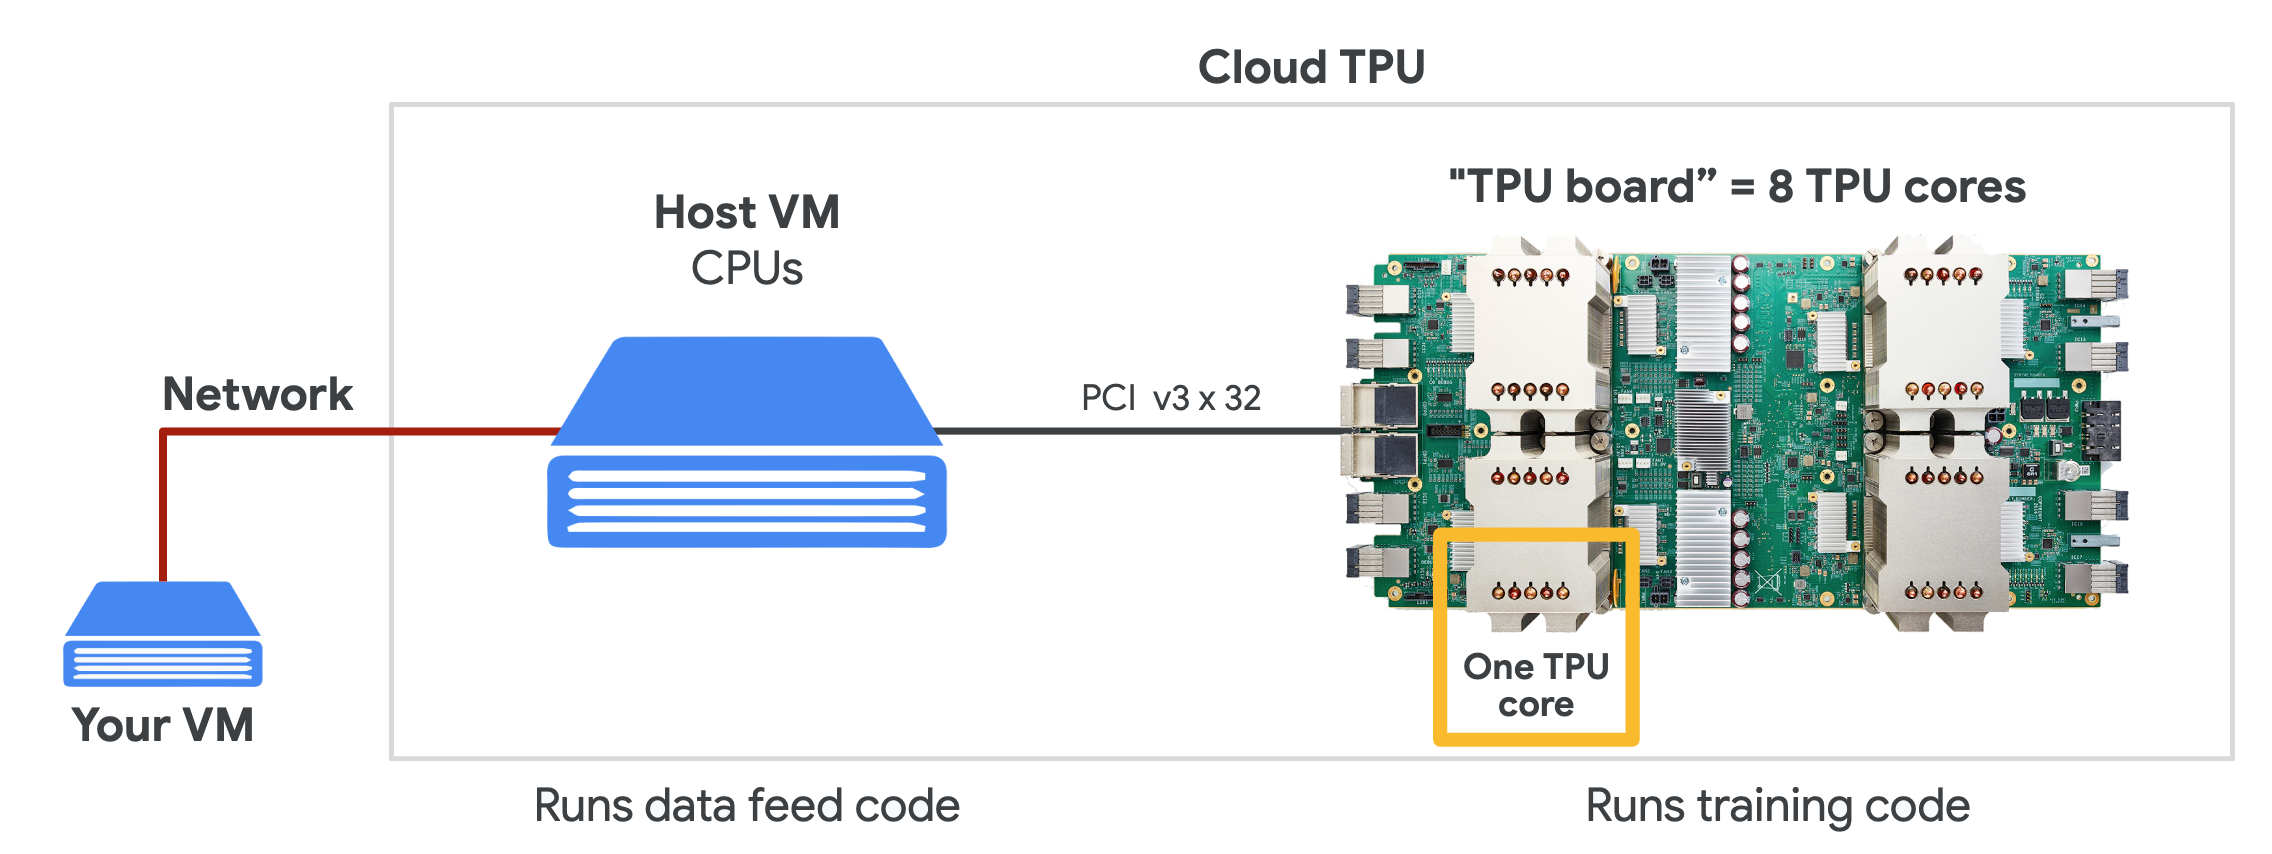 ../../_images/cloud-tpu-architecture.png